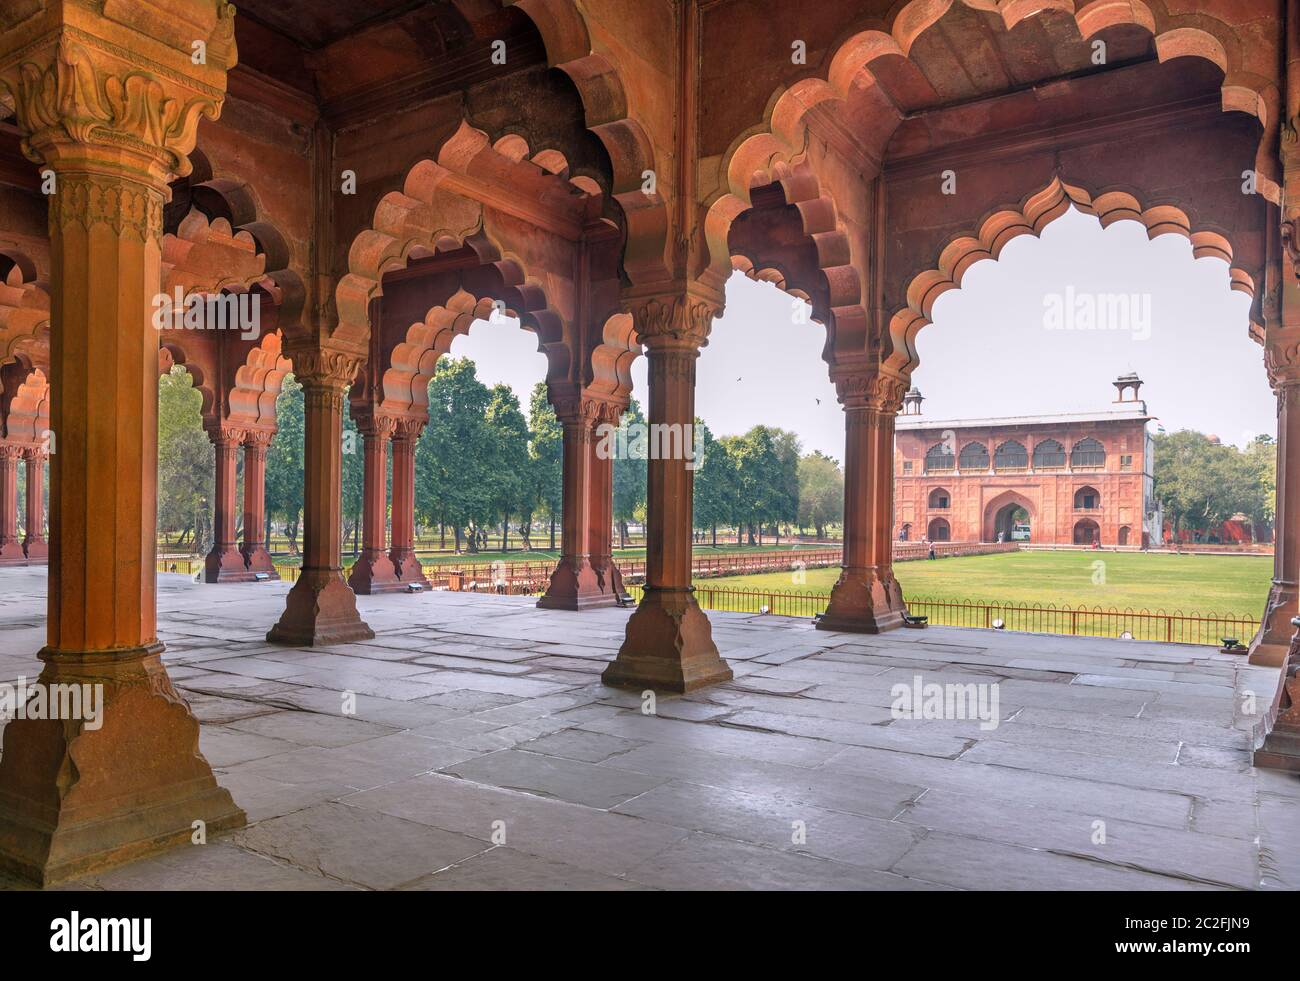 The Diwan-i-am (Hall of Public Audiences) in the Red Fort, Delhi, India Stock Photo